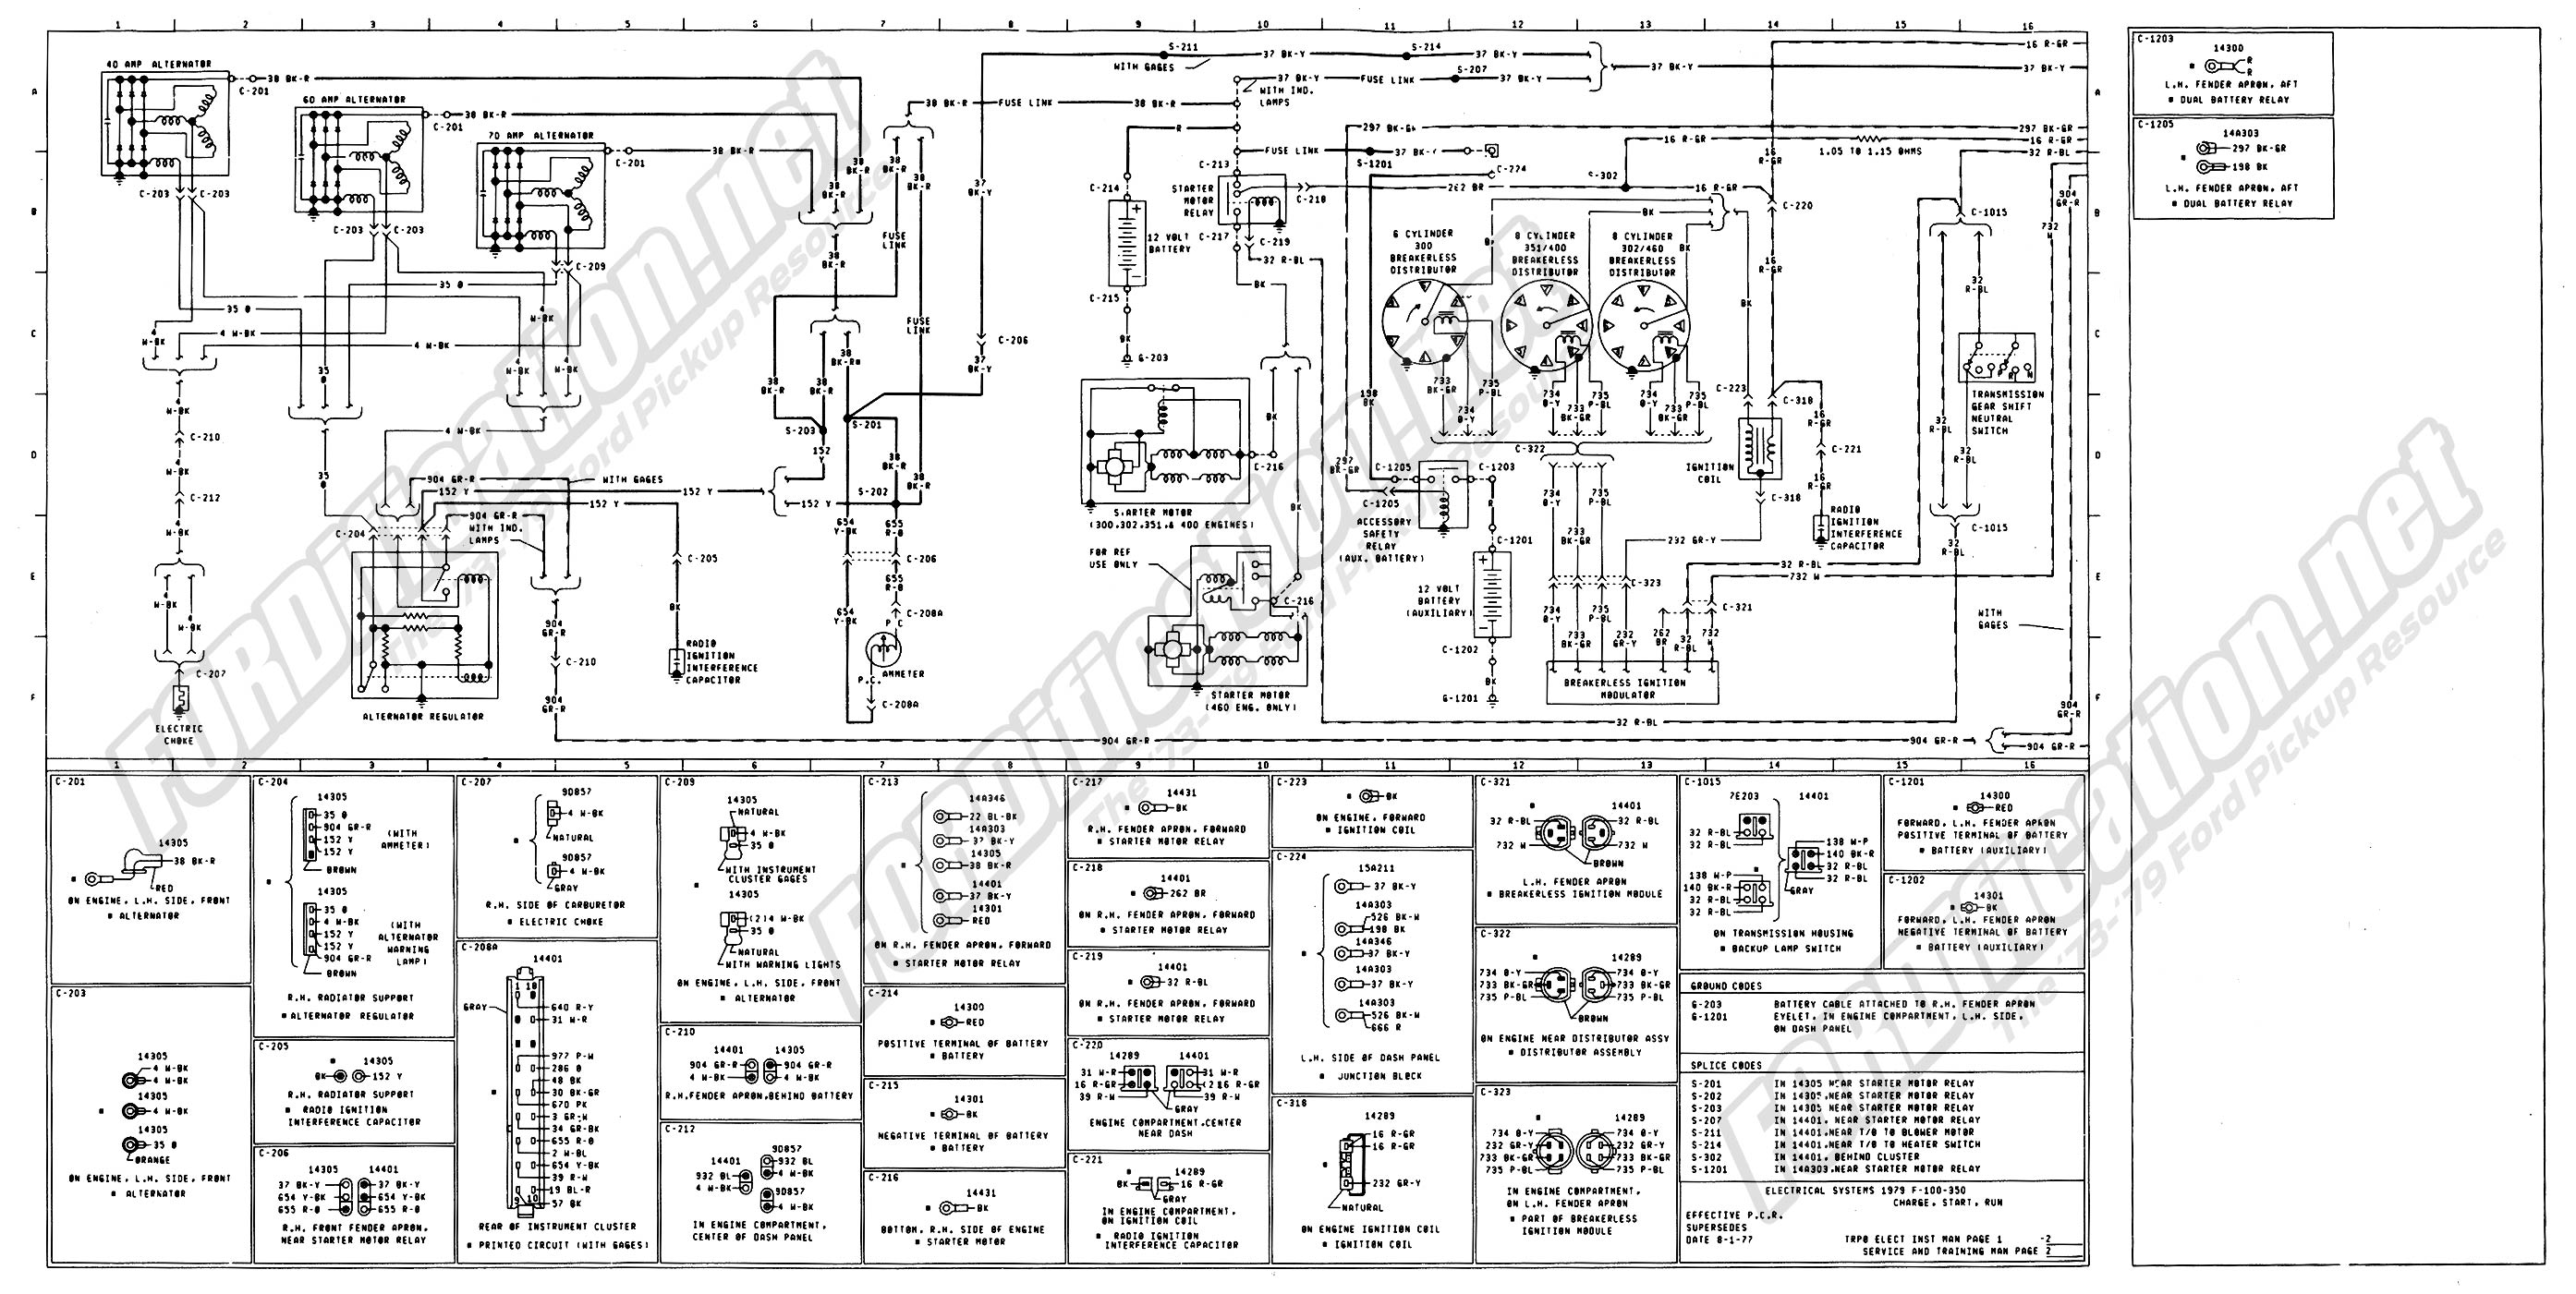 ford f800 wiring diagram on f800 wiring diagram #7